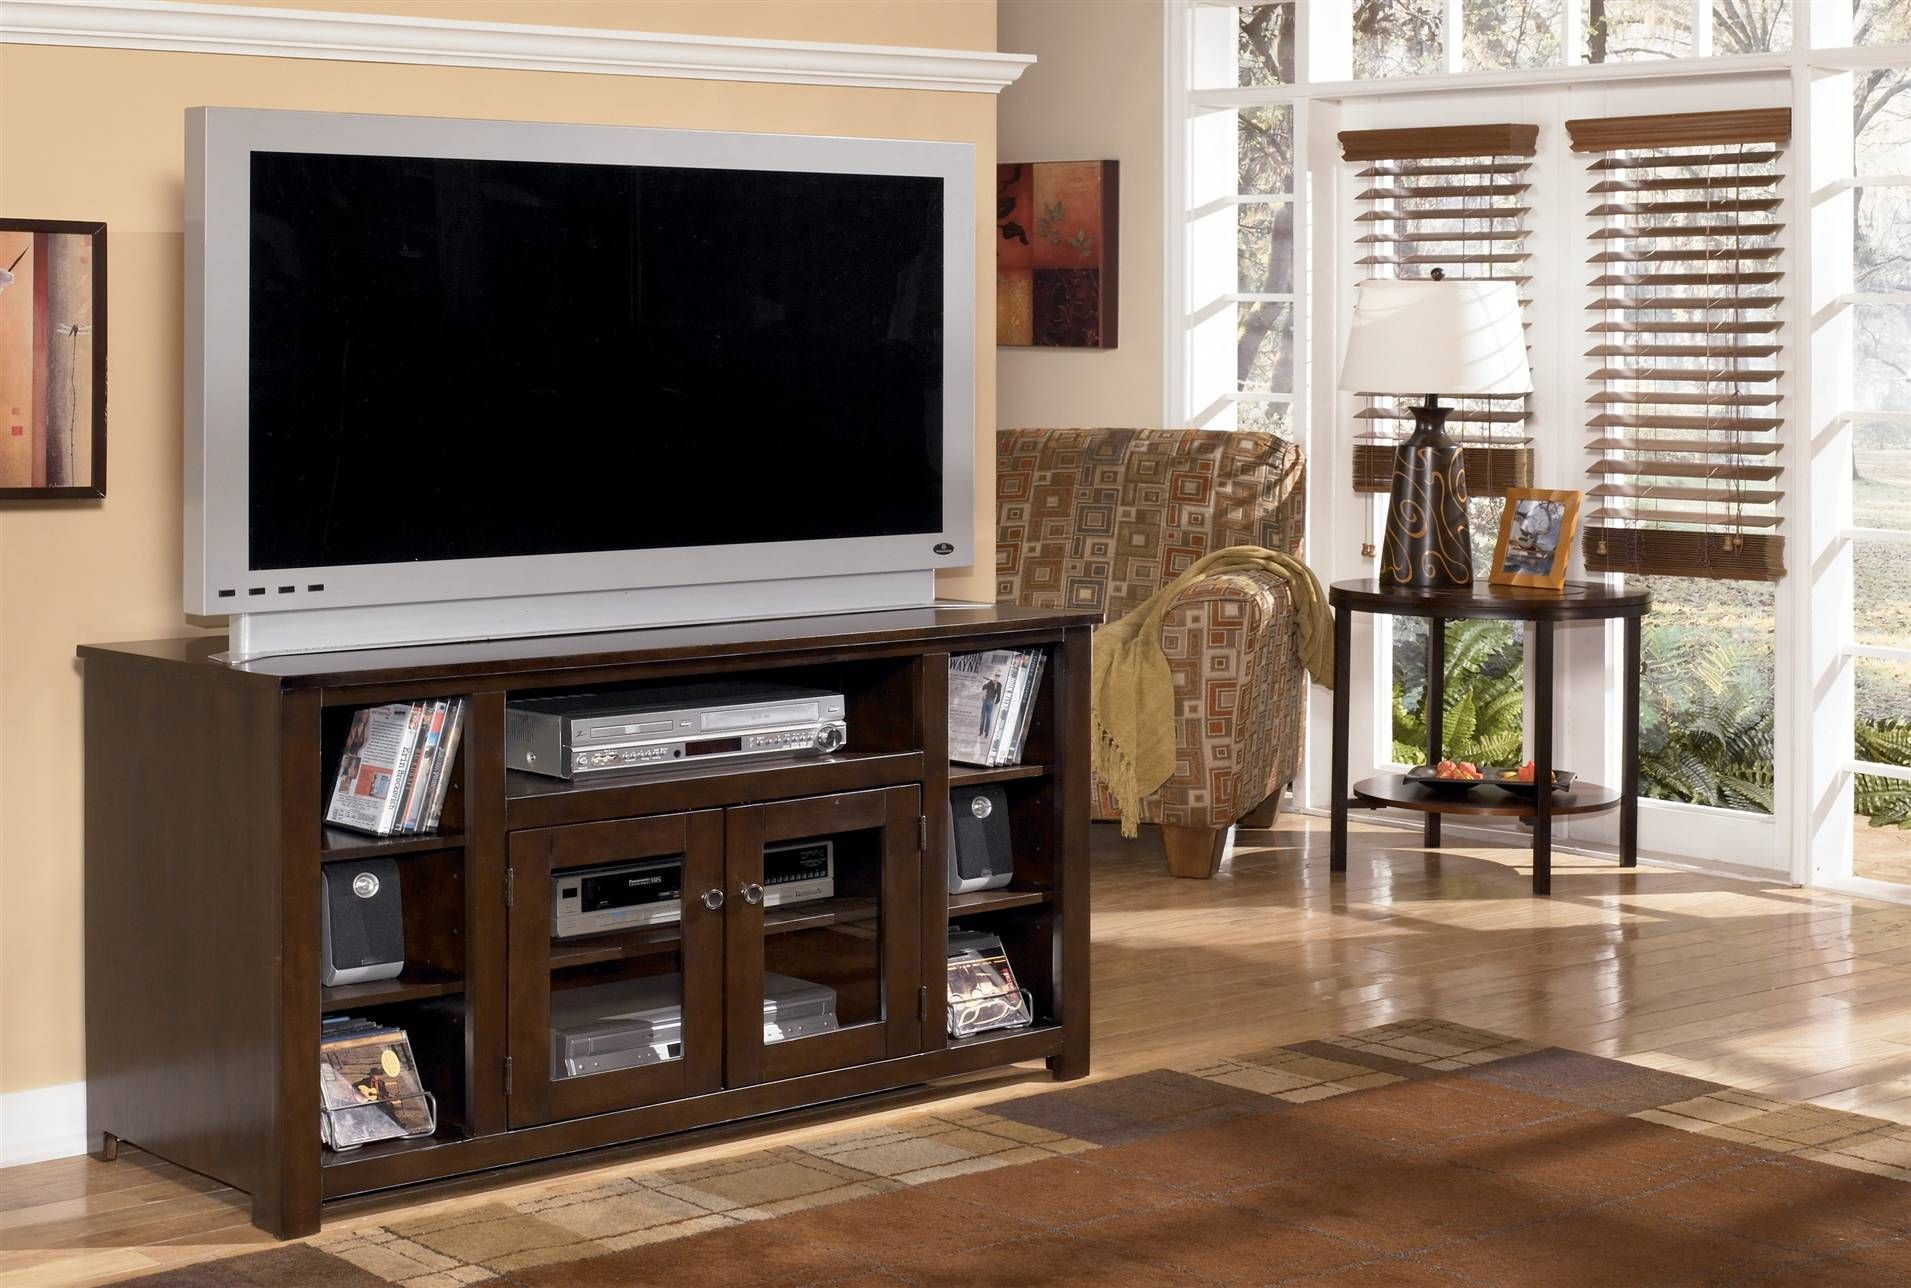 Marrion 50 Tv Stand 350 Tv Stand Dark Brown Large Tv Stands 60 Tv Stand 30 inch tall tv stand